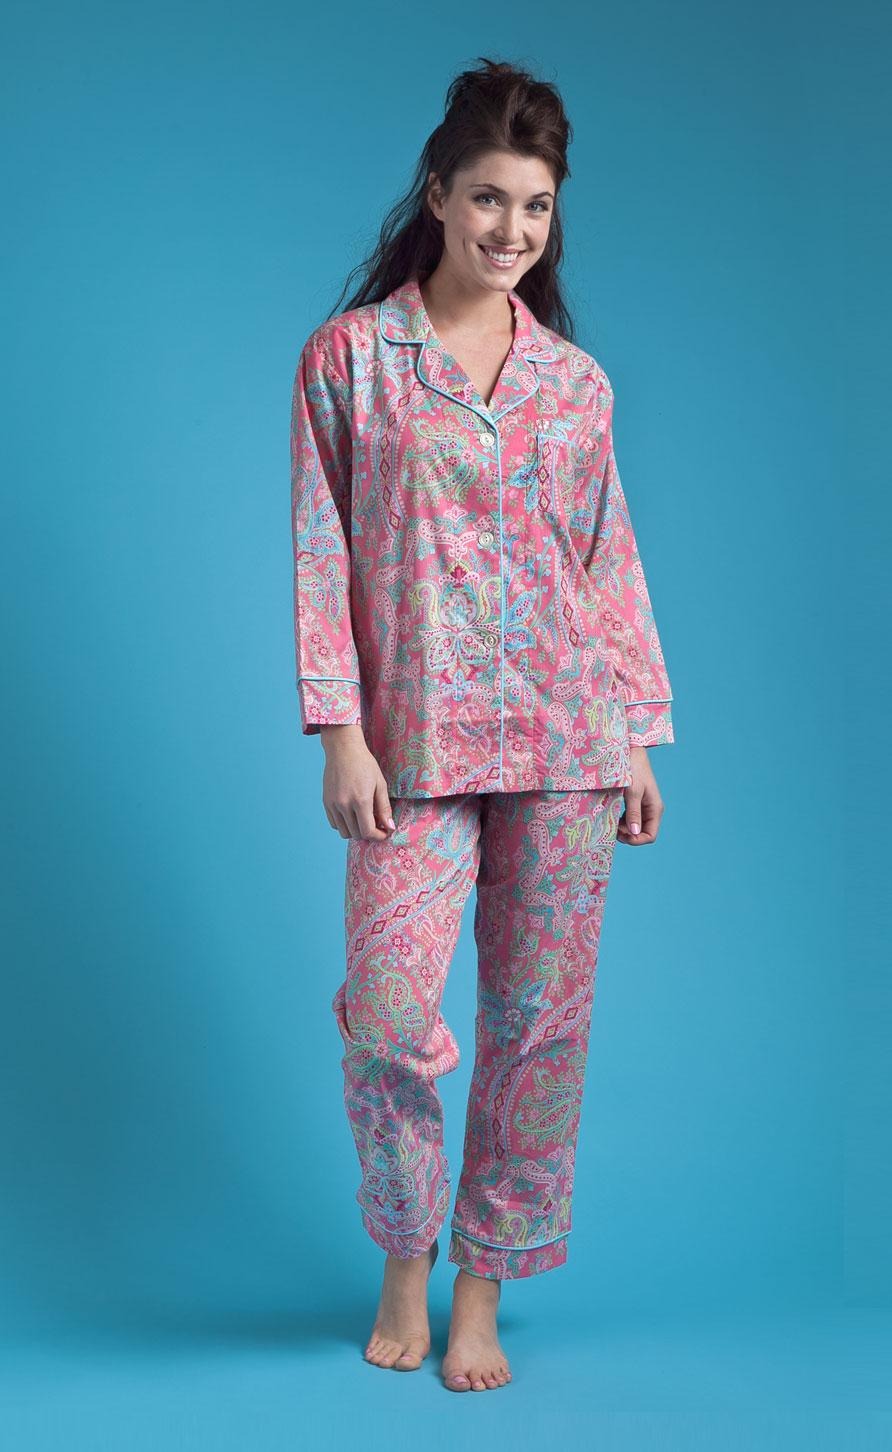 ladies night dress pyjamas - photo #47